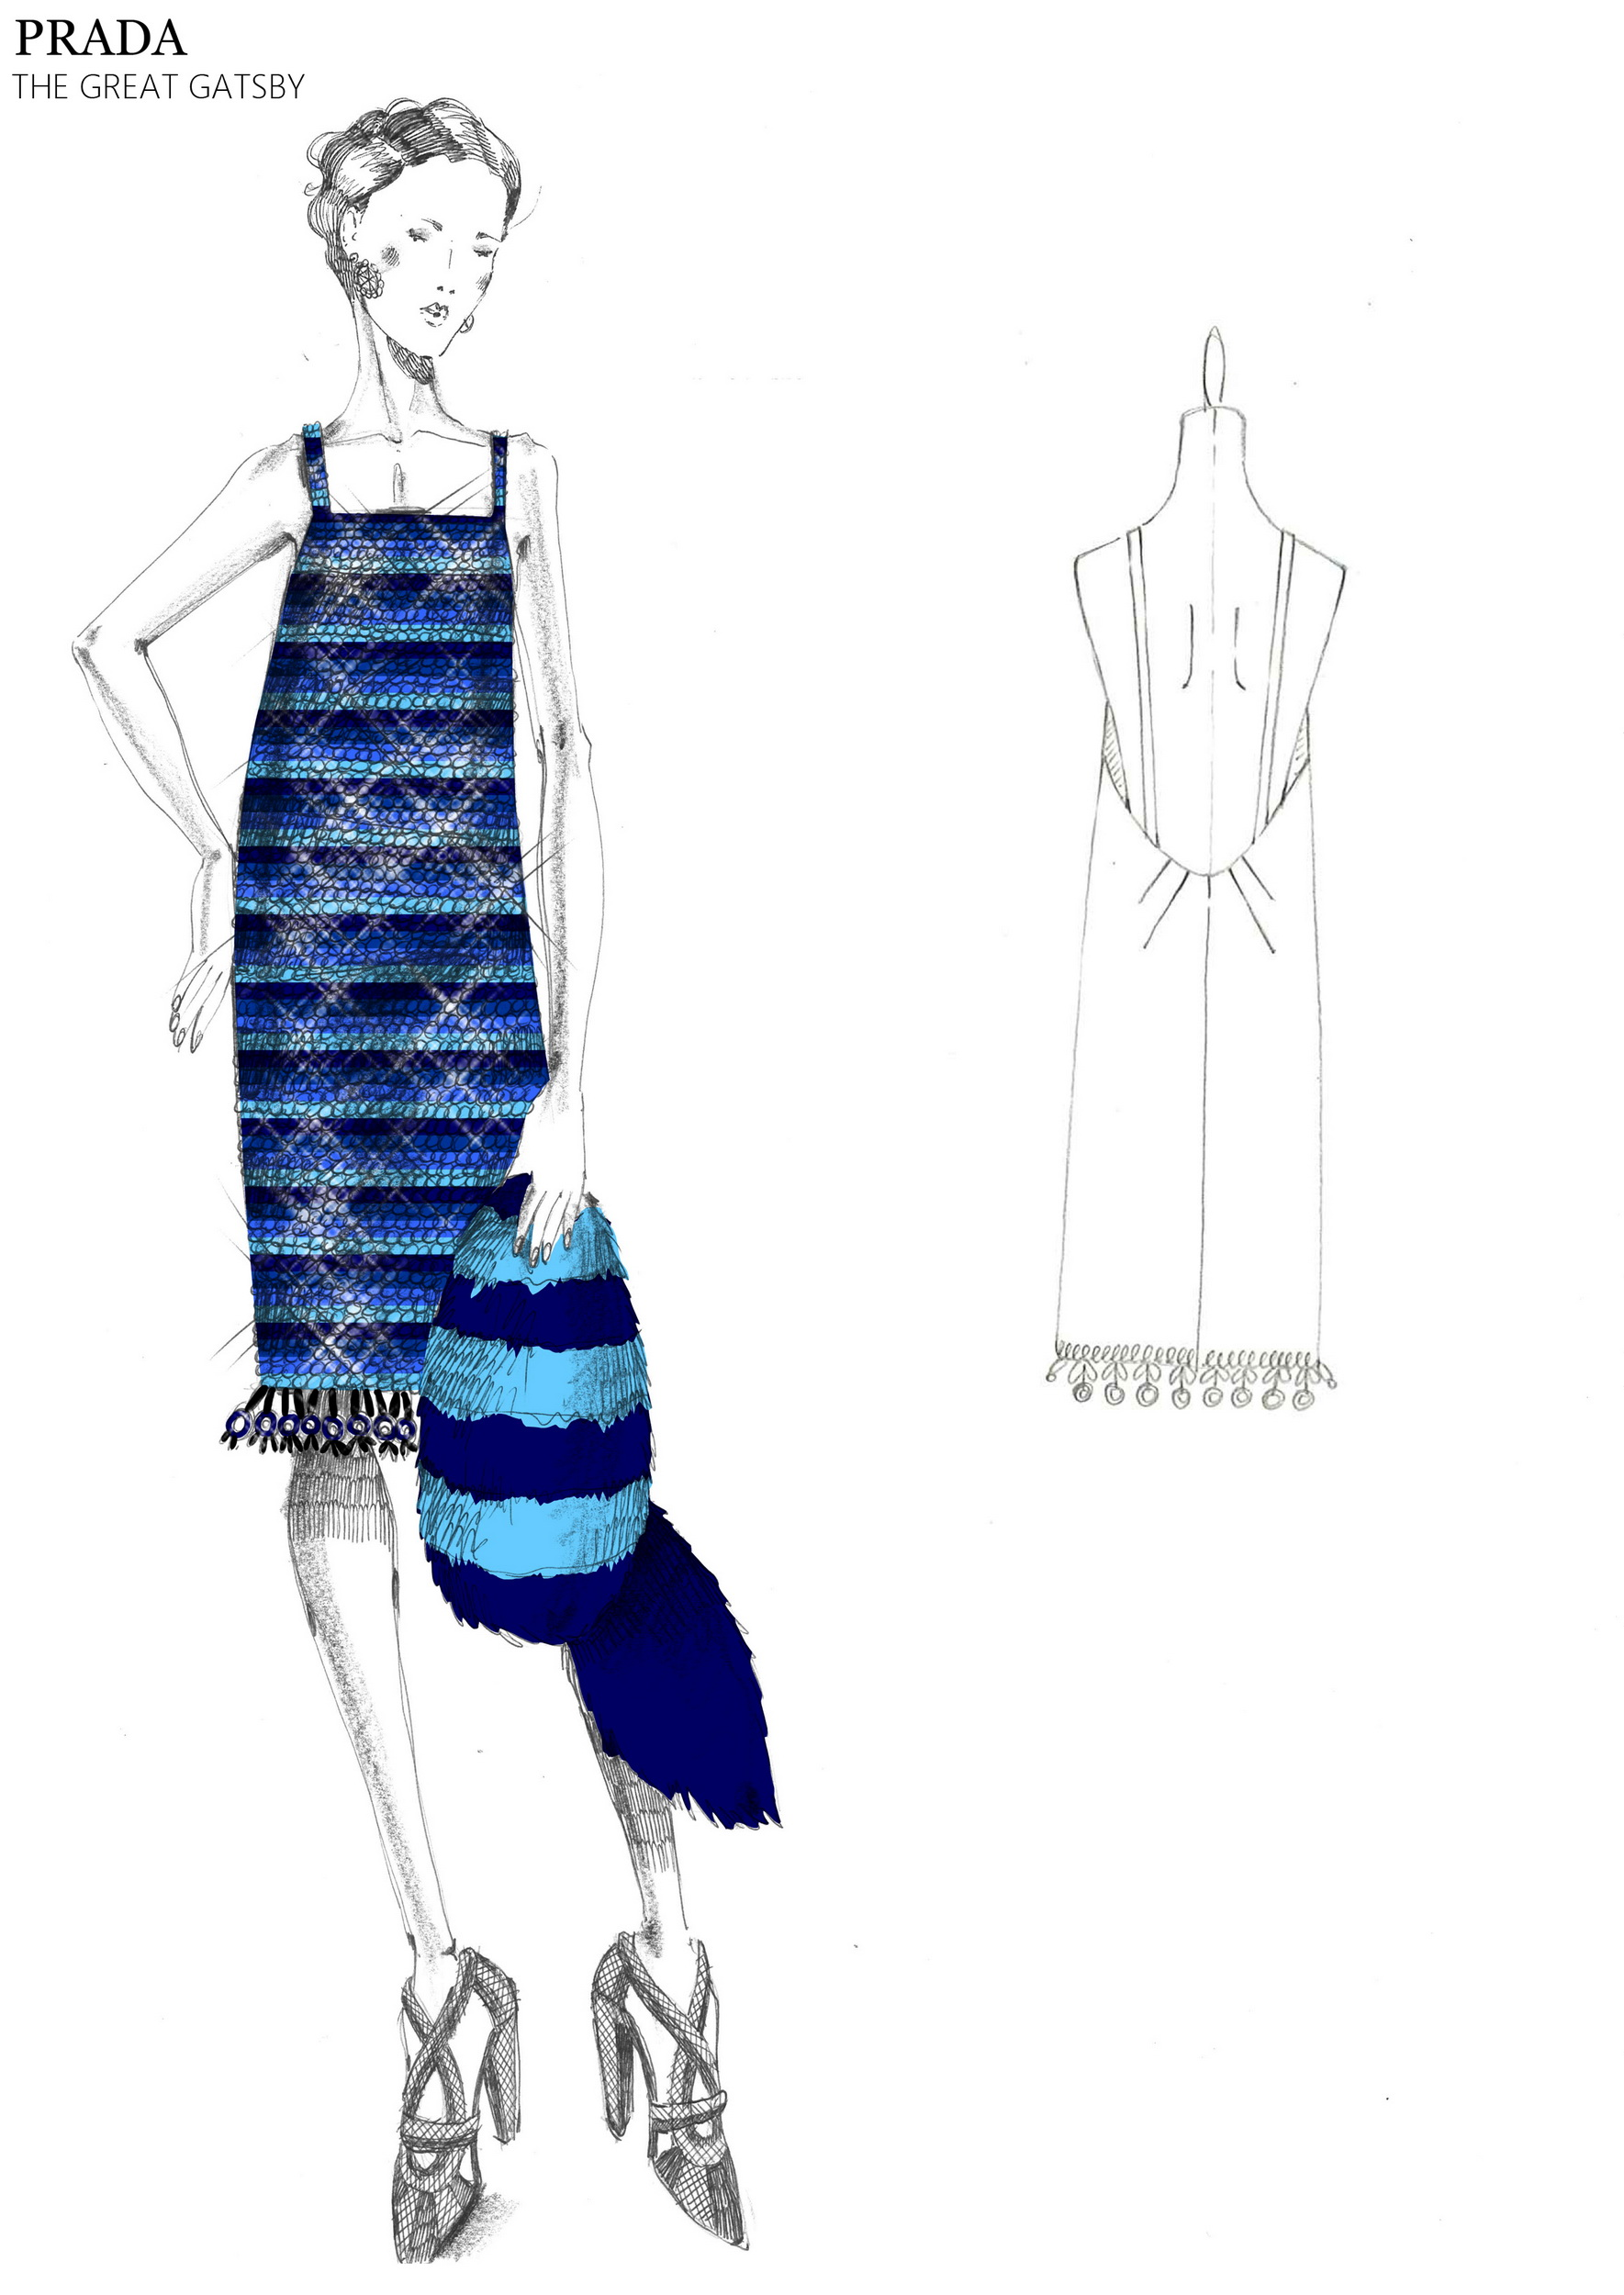 PRADA_THE GREAT GATSBY_16